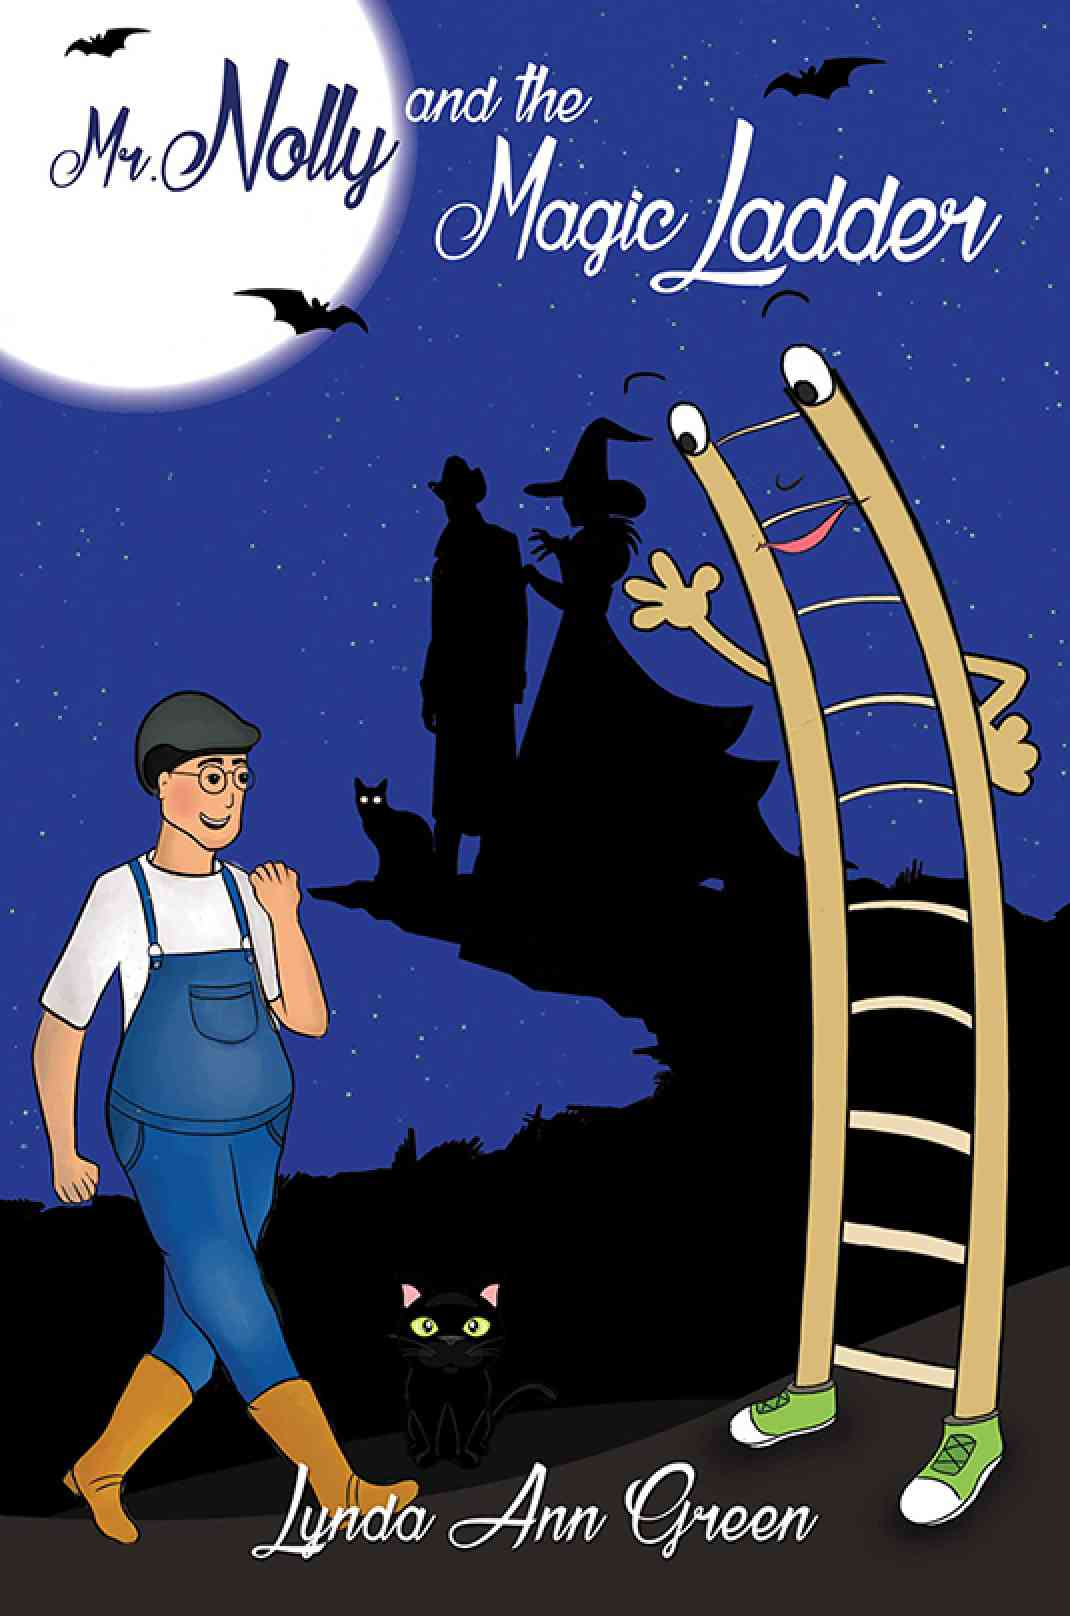 Mr. Nolly and the Magic Ladder